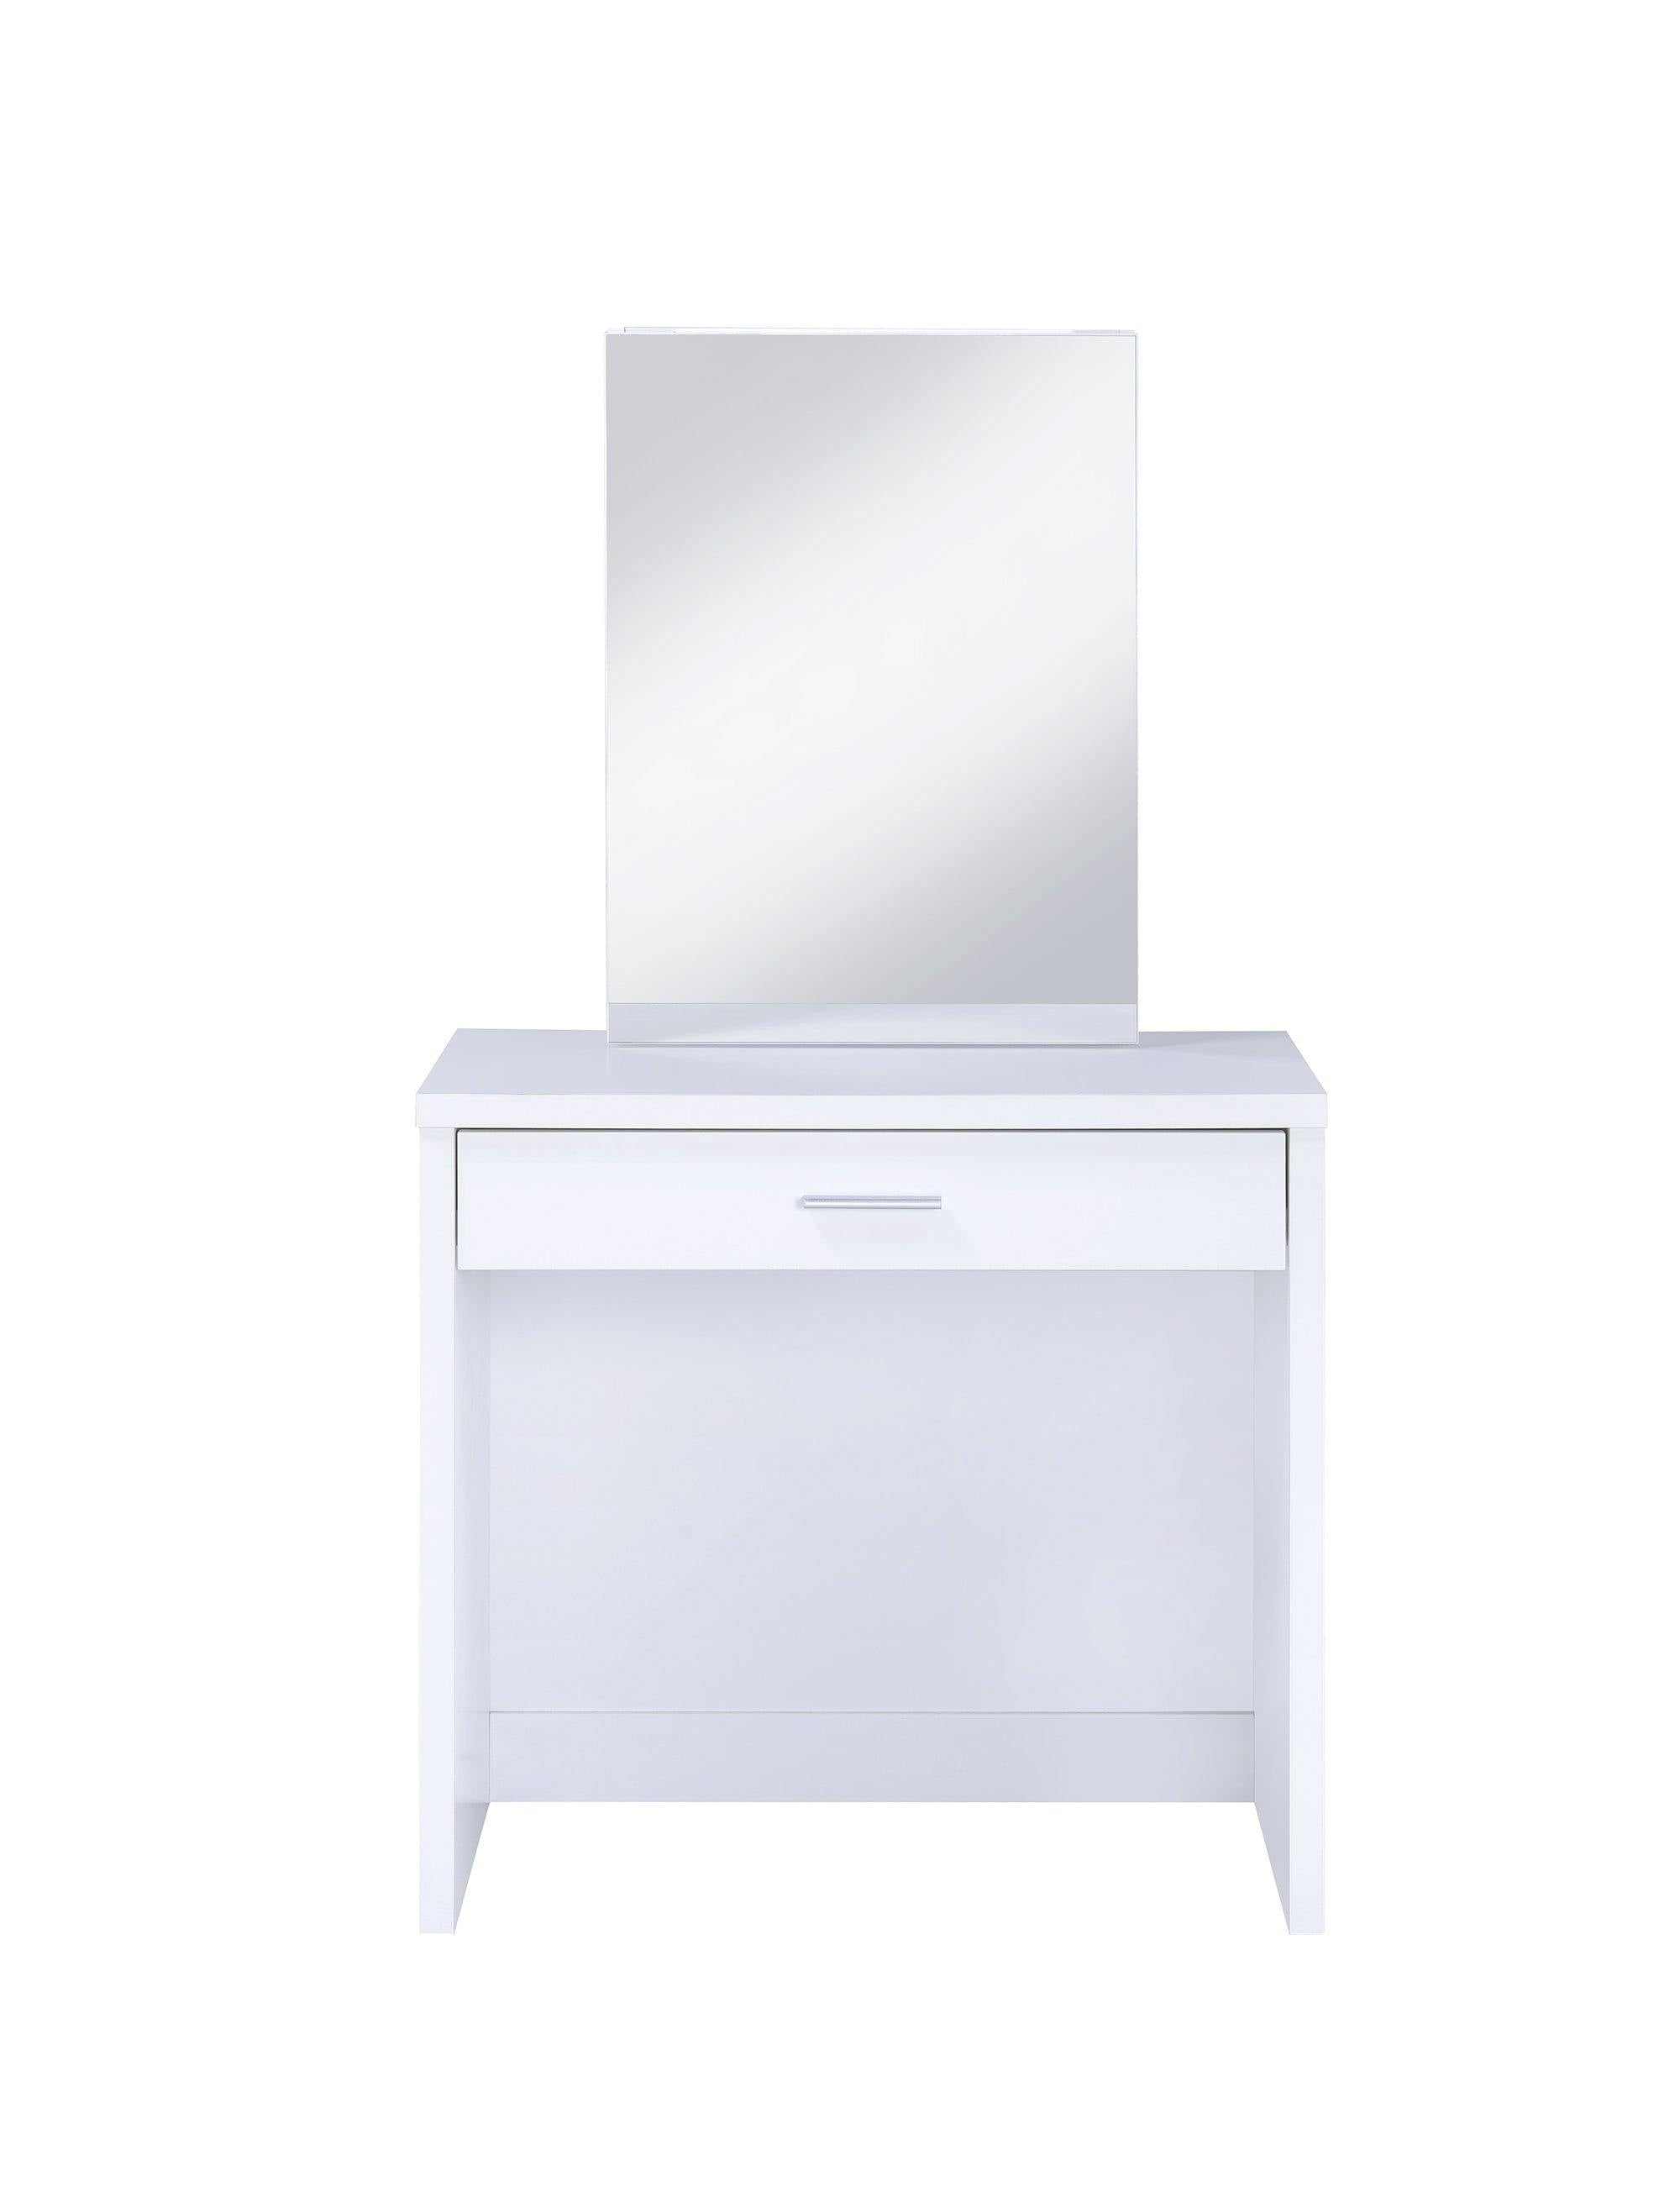 Contemporary white vanity and upholstered stool set 300290 Vanity1 By coaster - sofafair.com